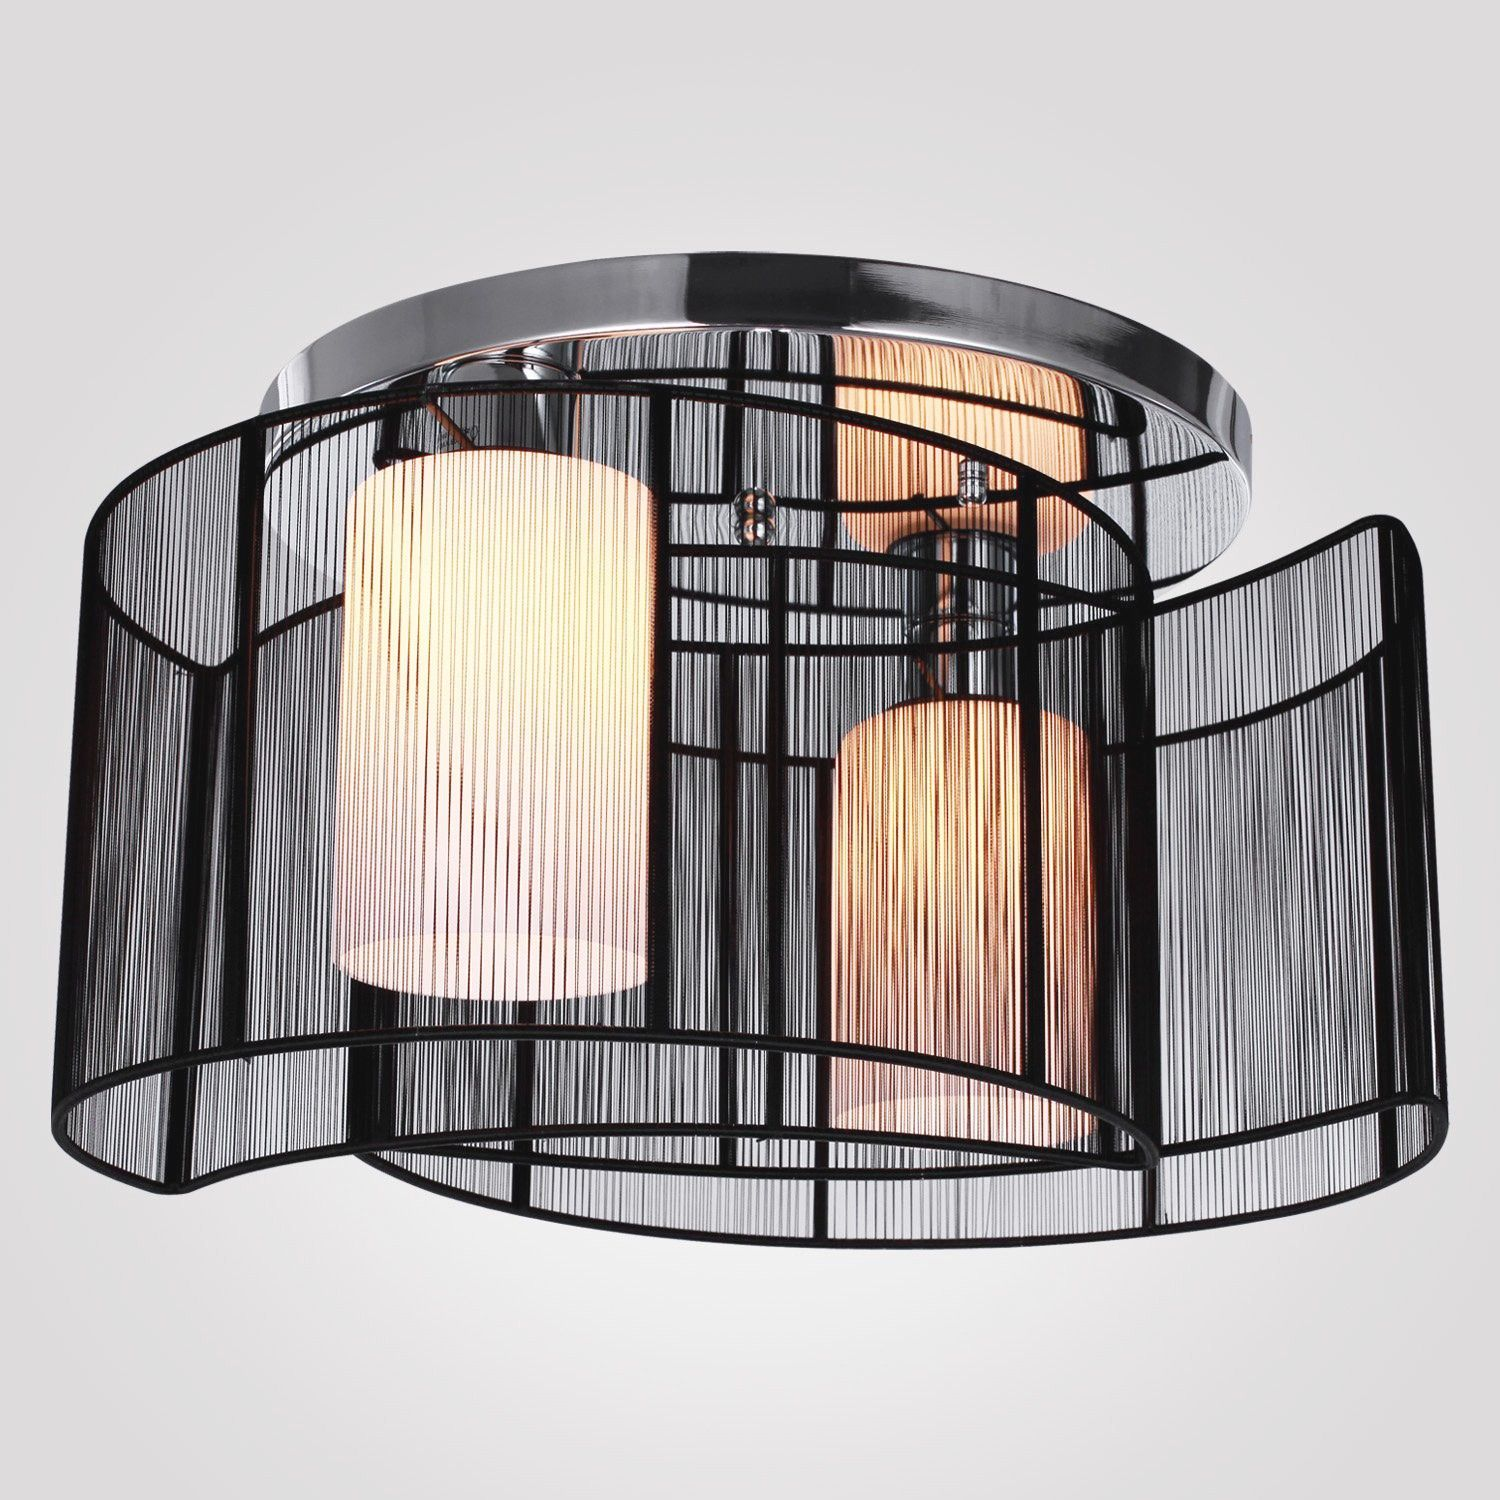 Decor Drum Lampshade For Semi Flush Mount Lighting With Home Interior Design Also Light